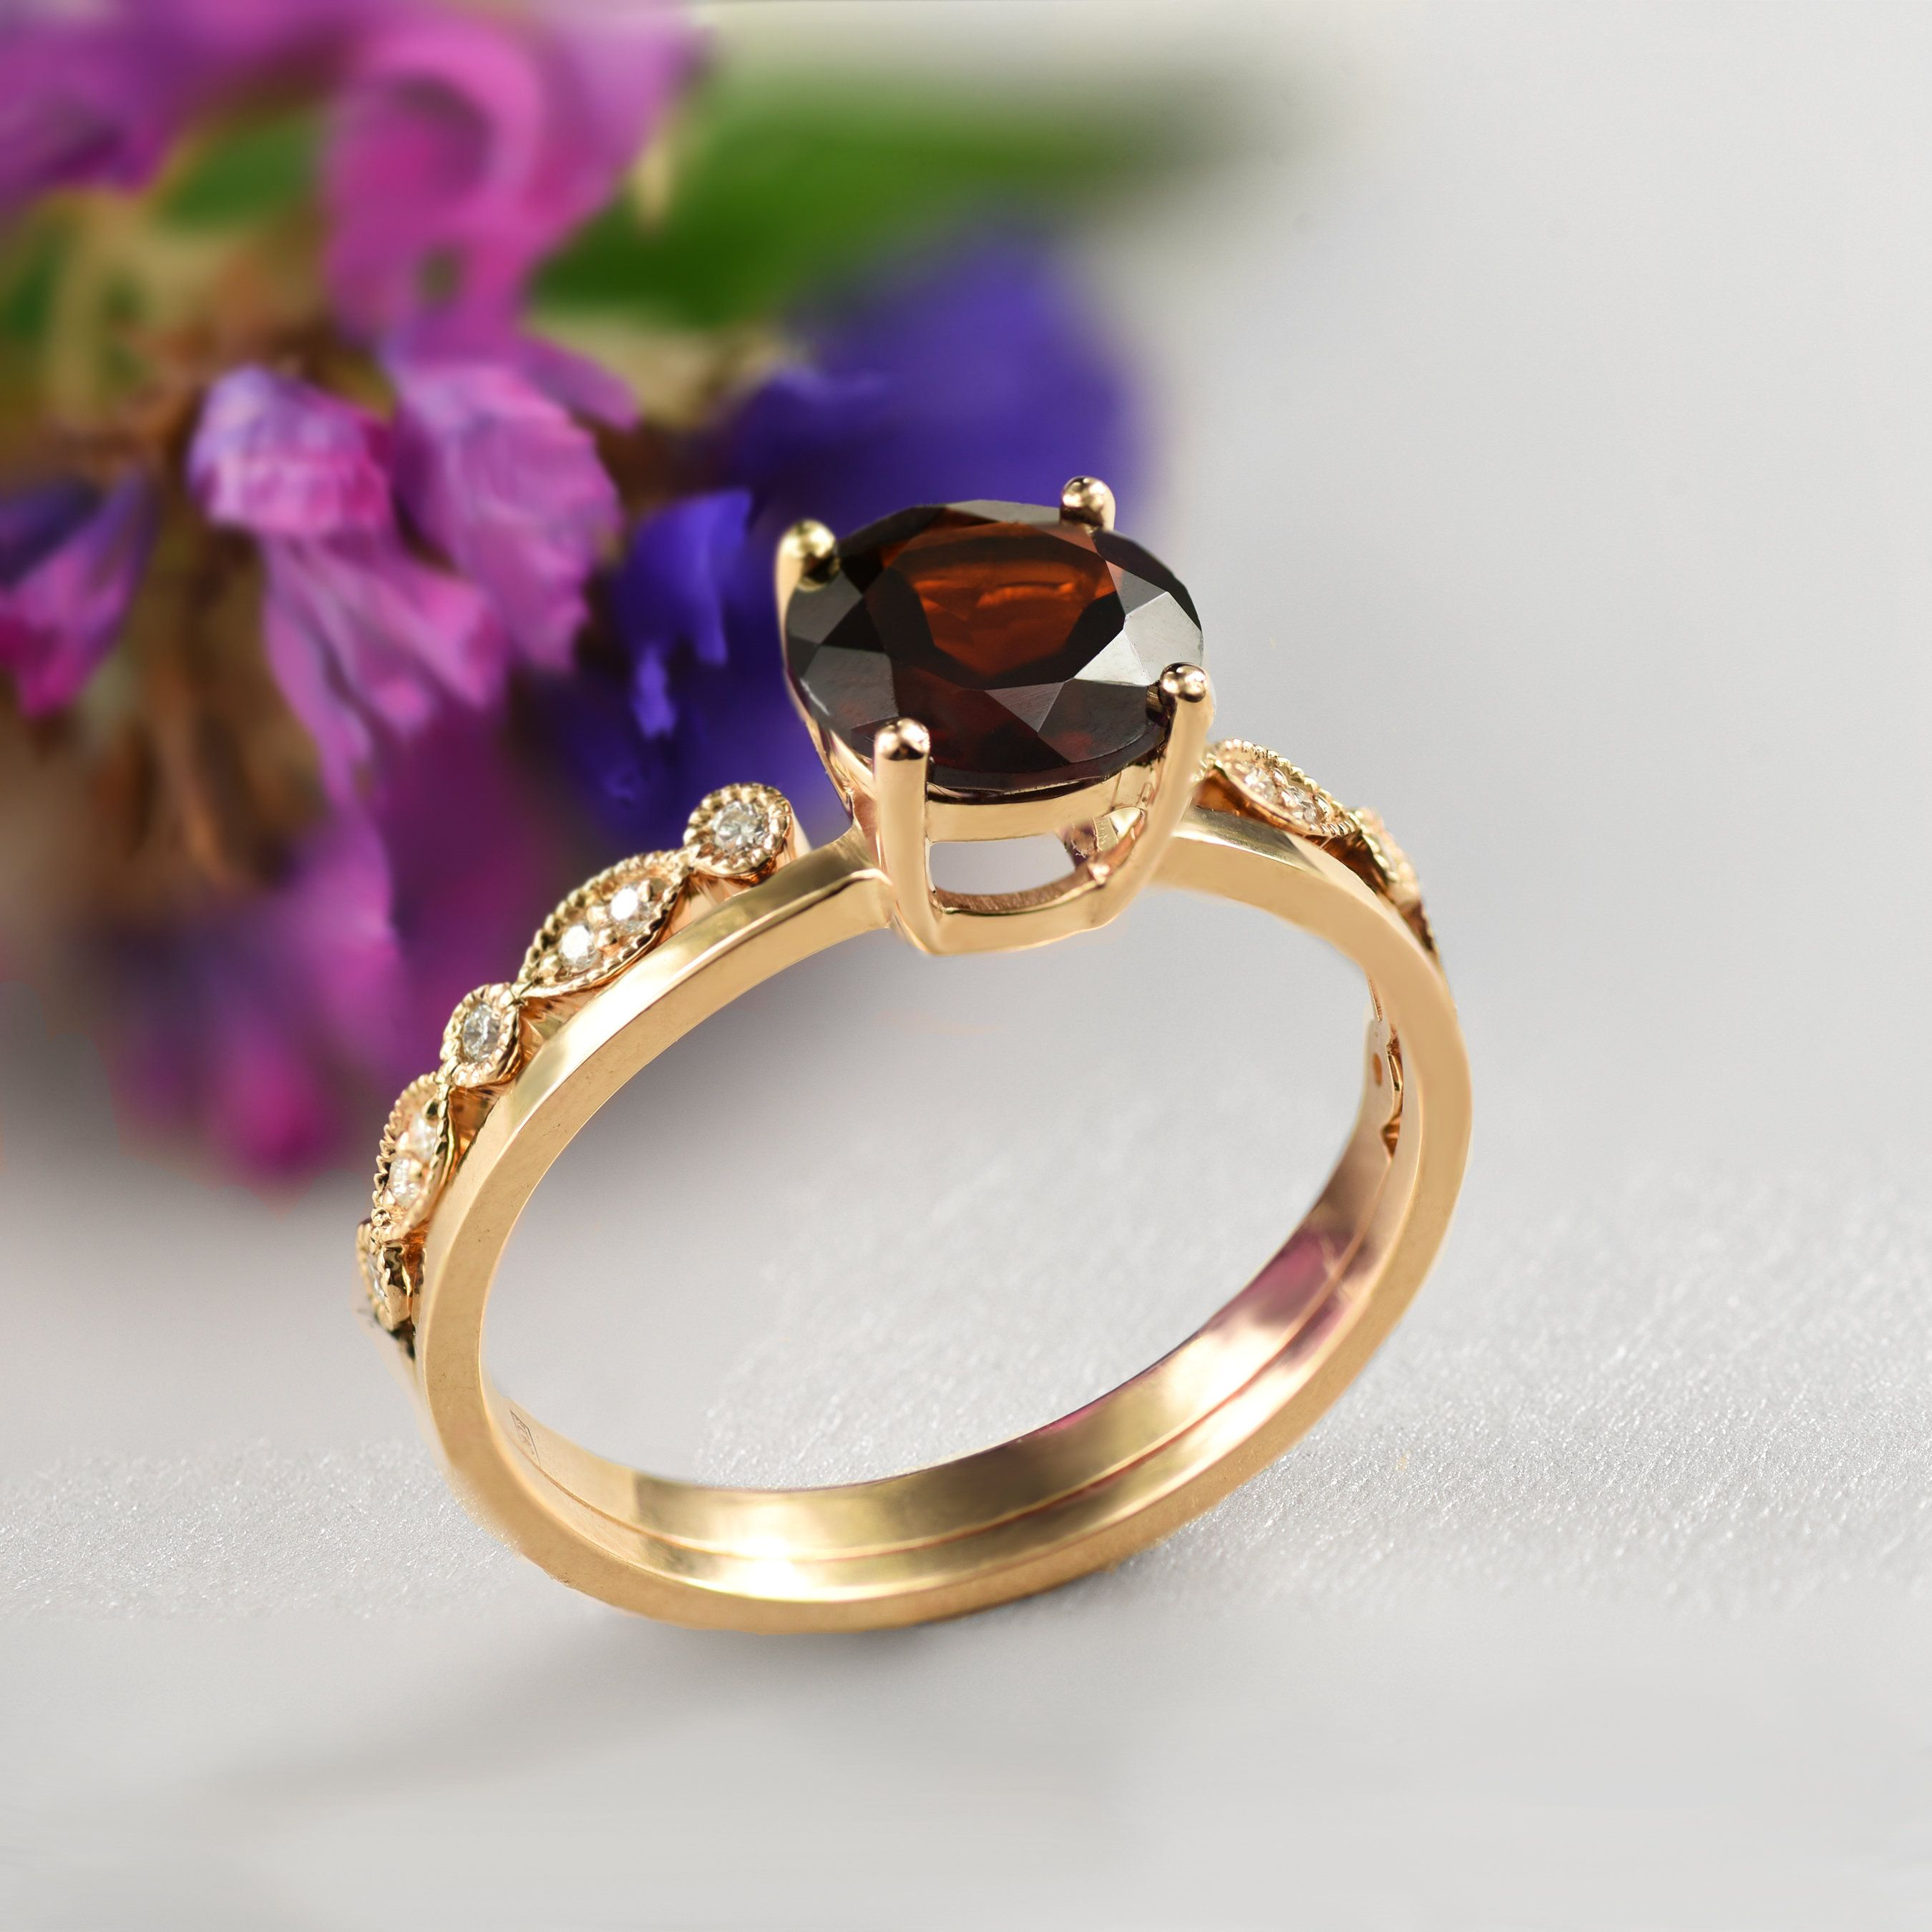 engagement ring, vintage style gold ring